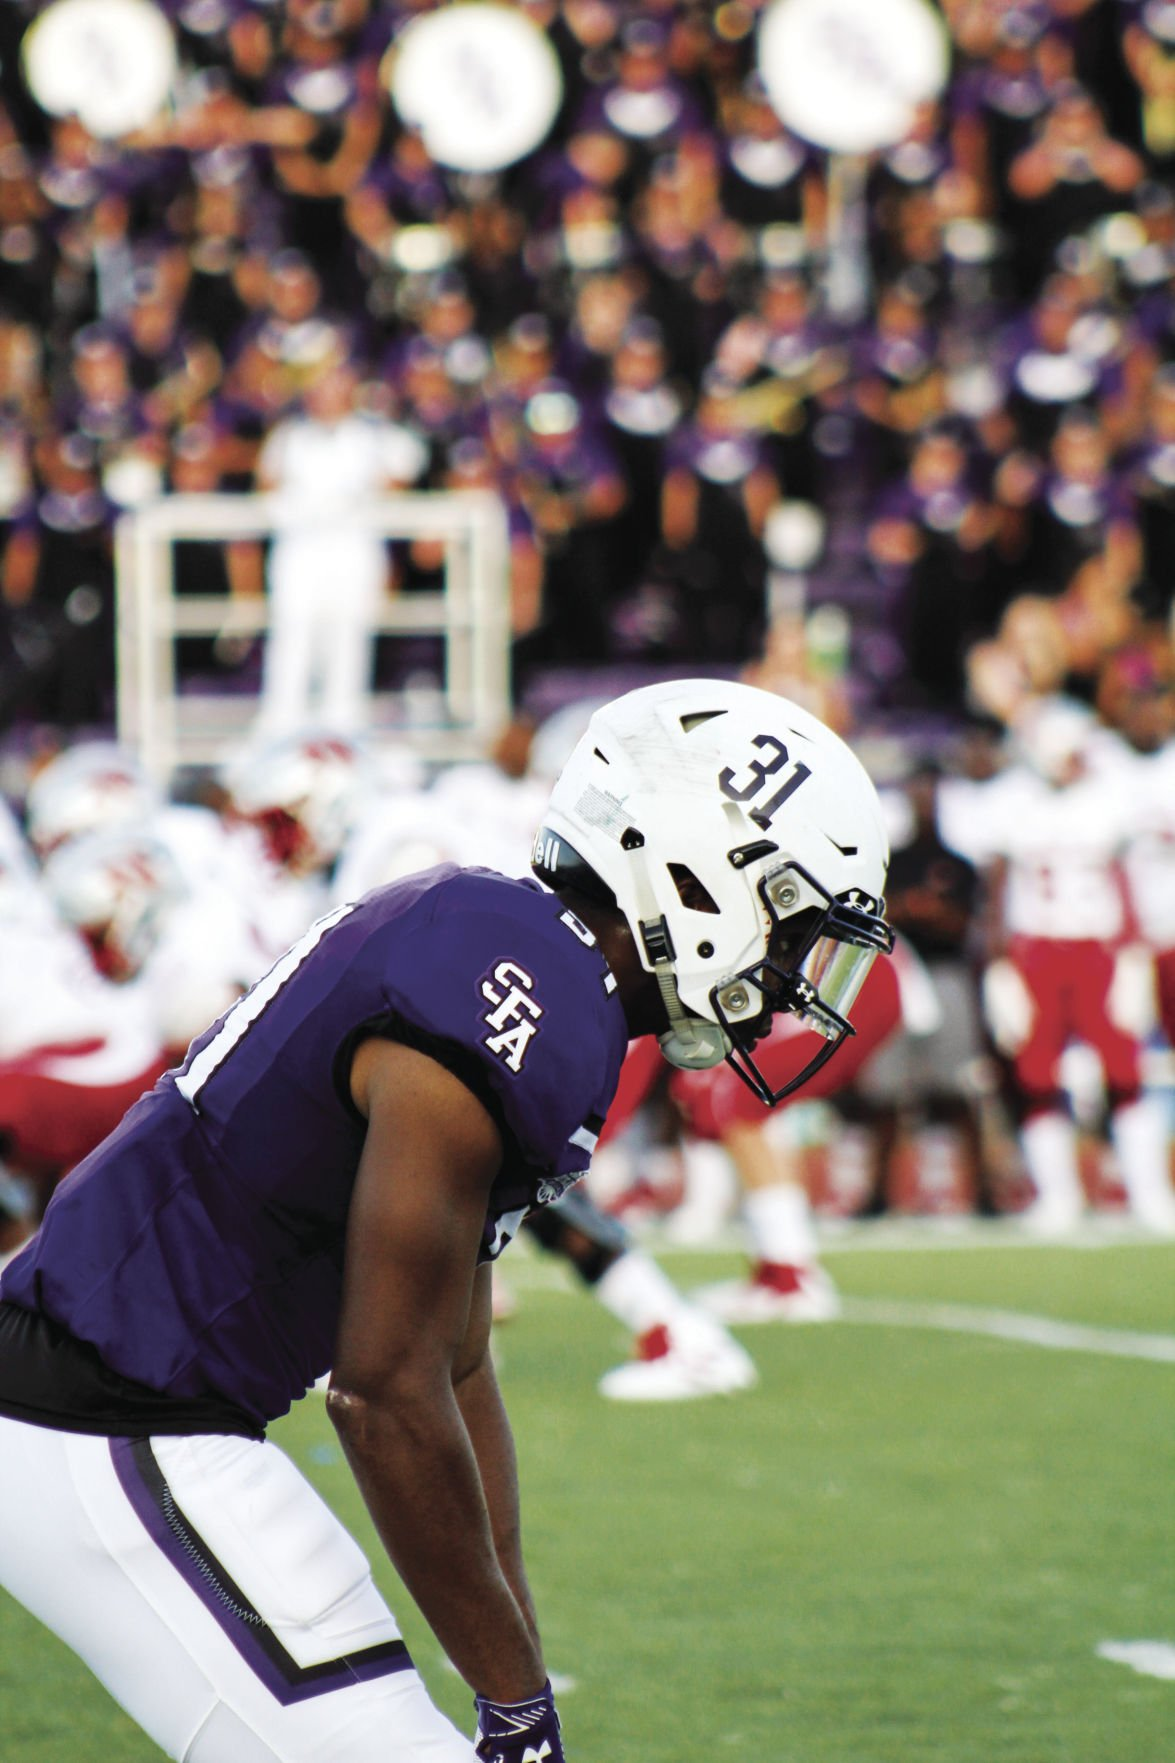 SFA comes off first win of the season to face Sam Houston in the Battle of the Piney Woods